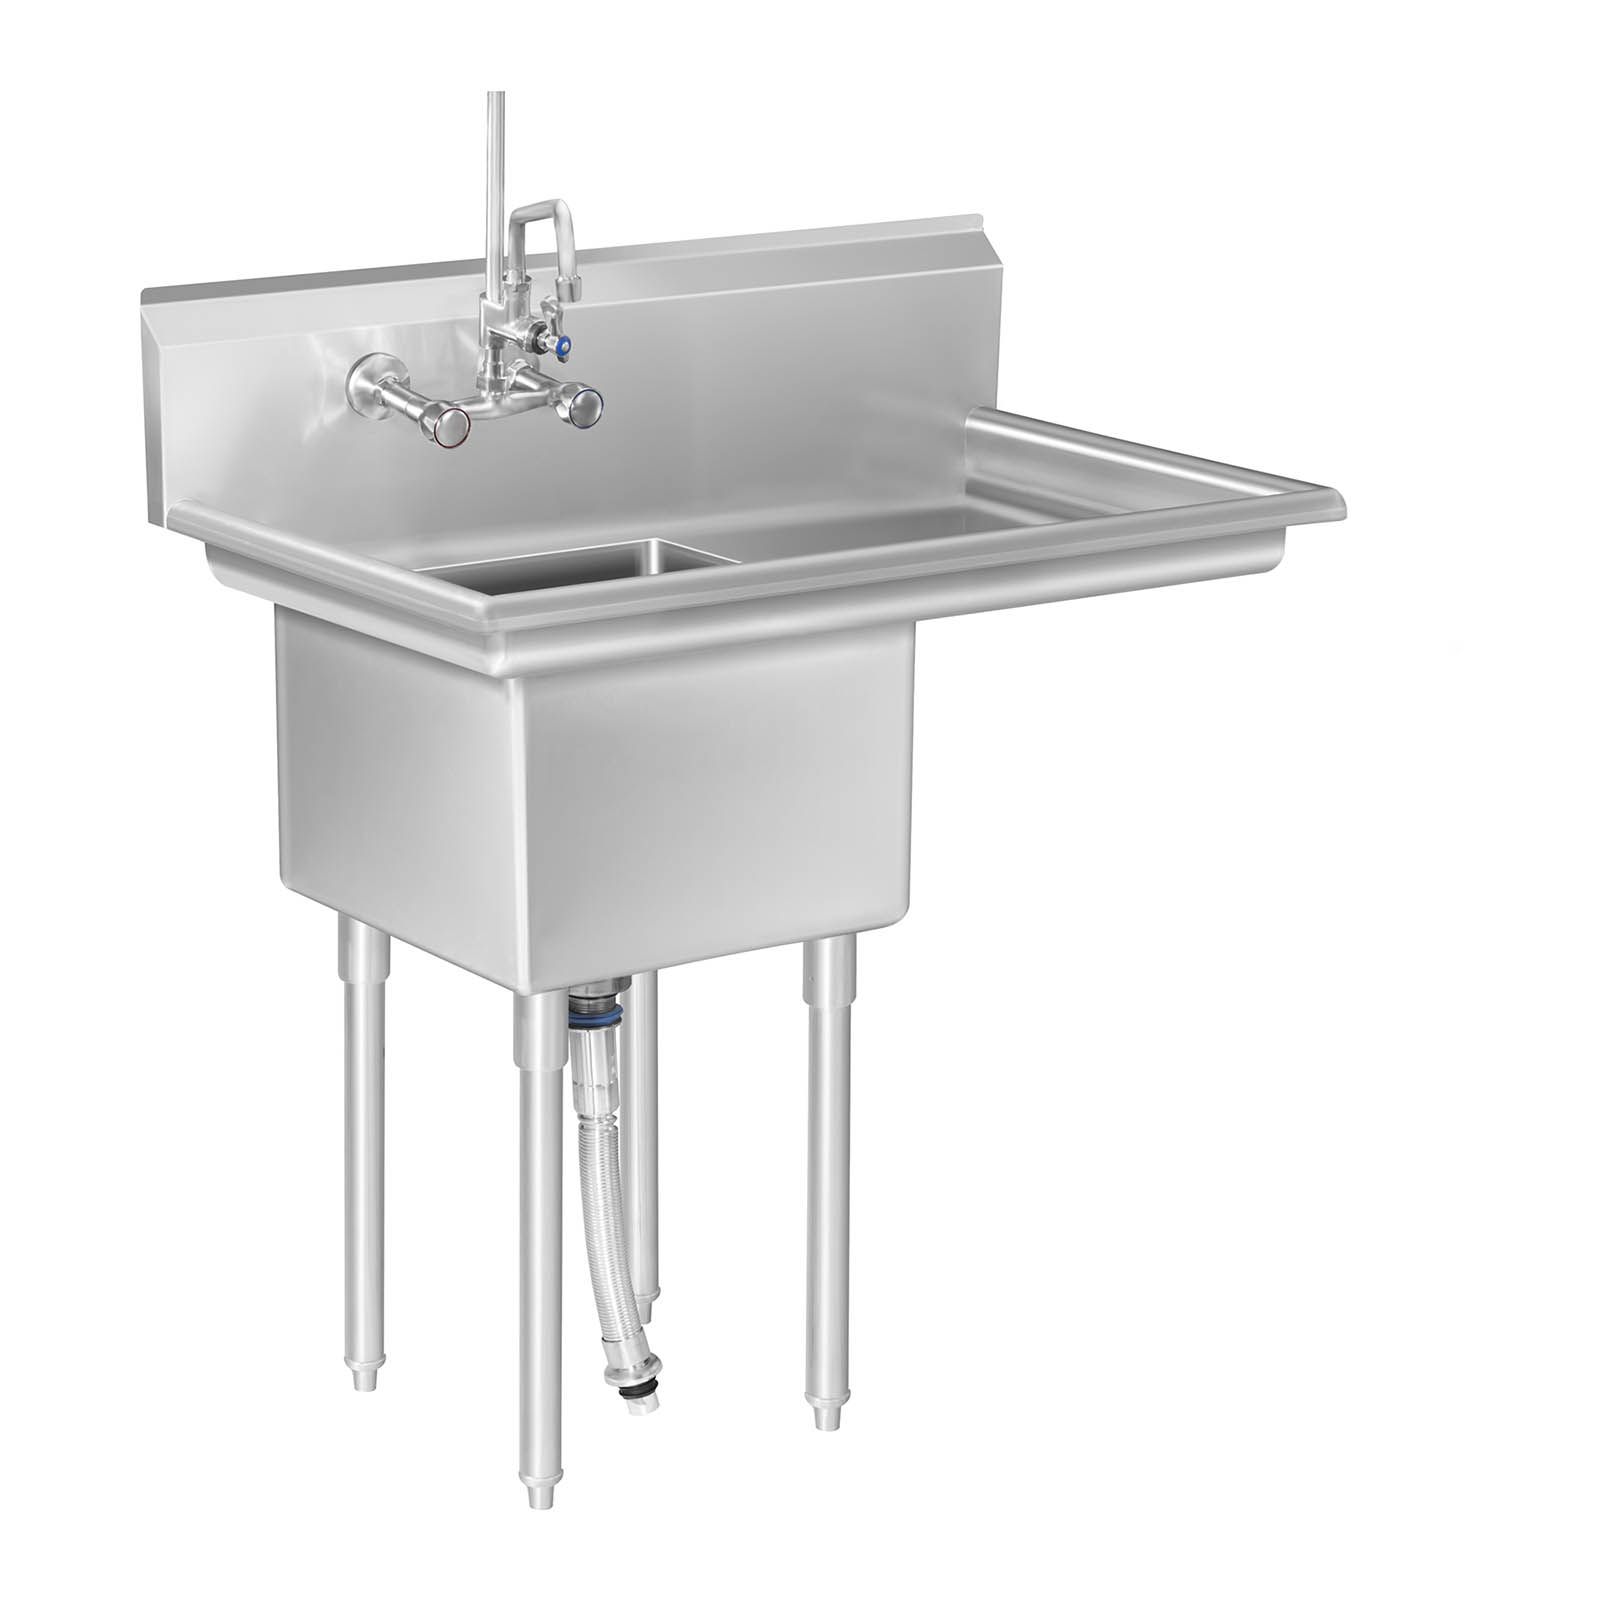 stainless steel kitchen sink unit sink large kitchen sink unit 3 basin stainless 8272